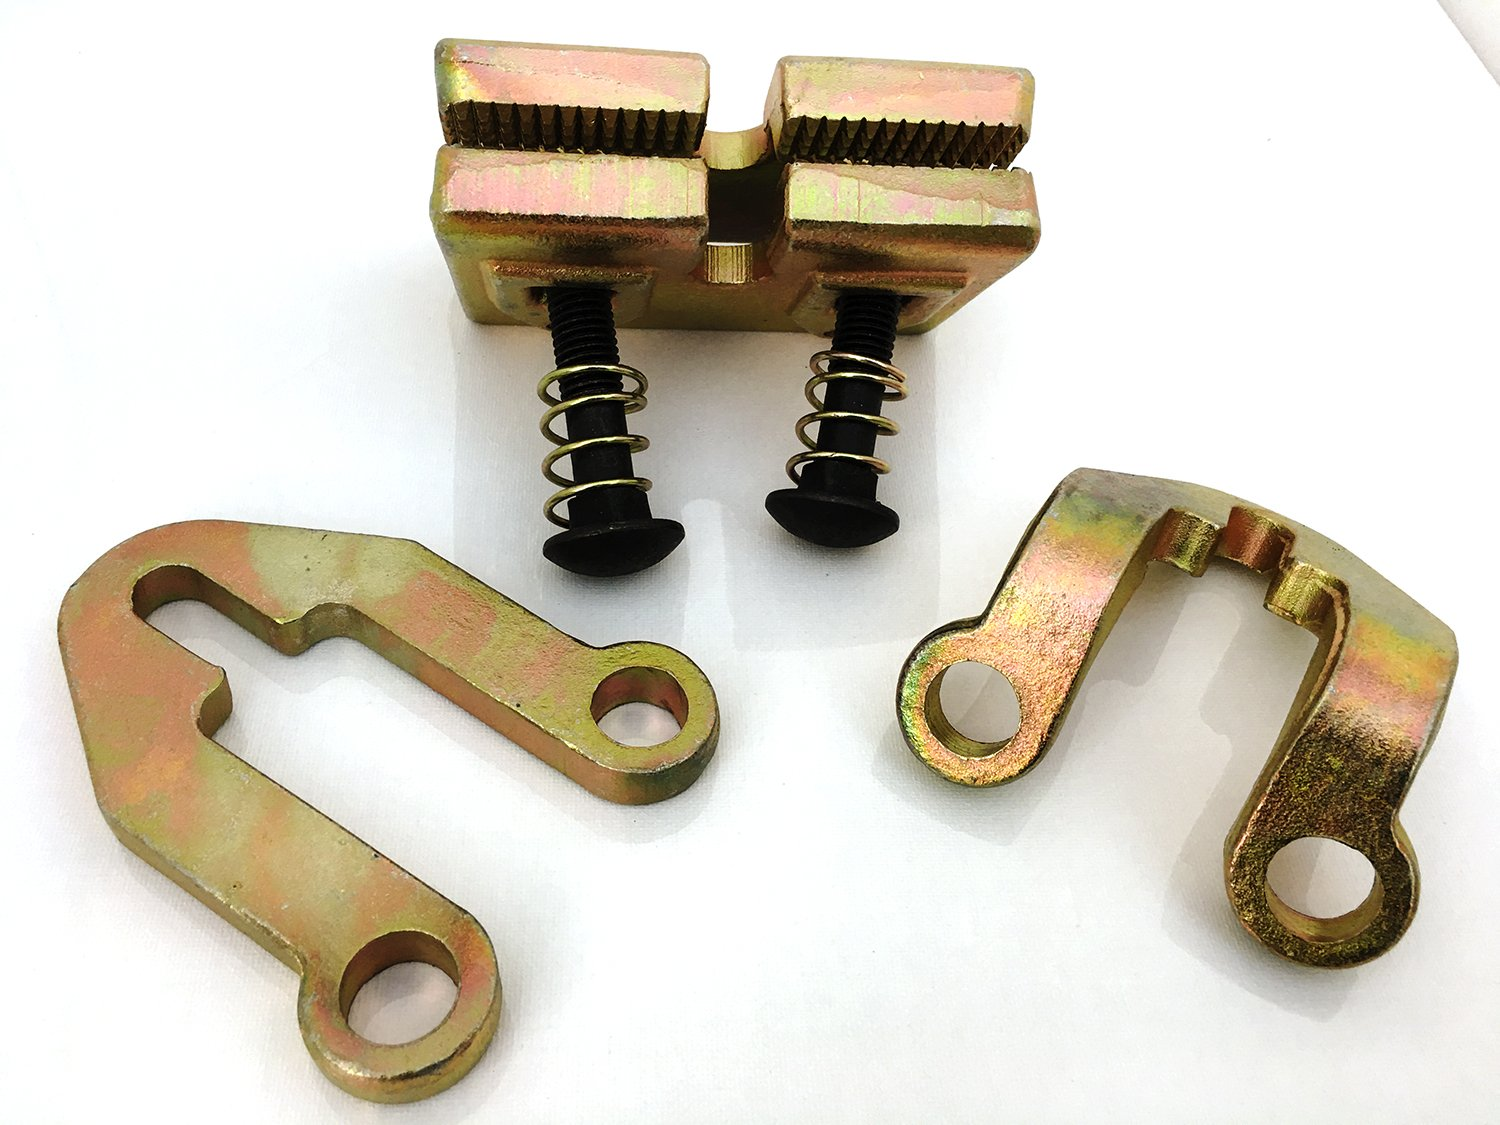 Frame Pulling Clamps (TWO WAY) 5 AND 3 Ton Pulling Capacity by Dynamic Automotive Supplies (Image #5)